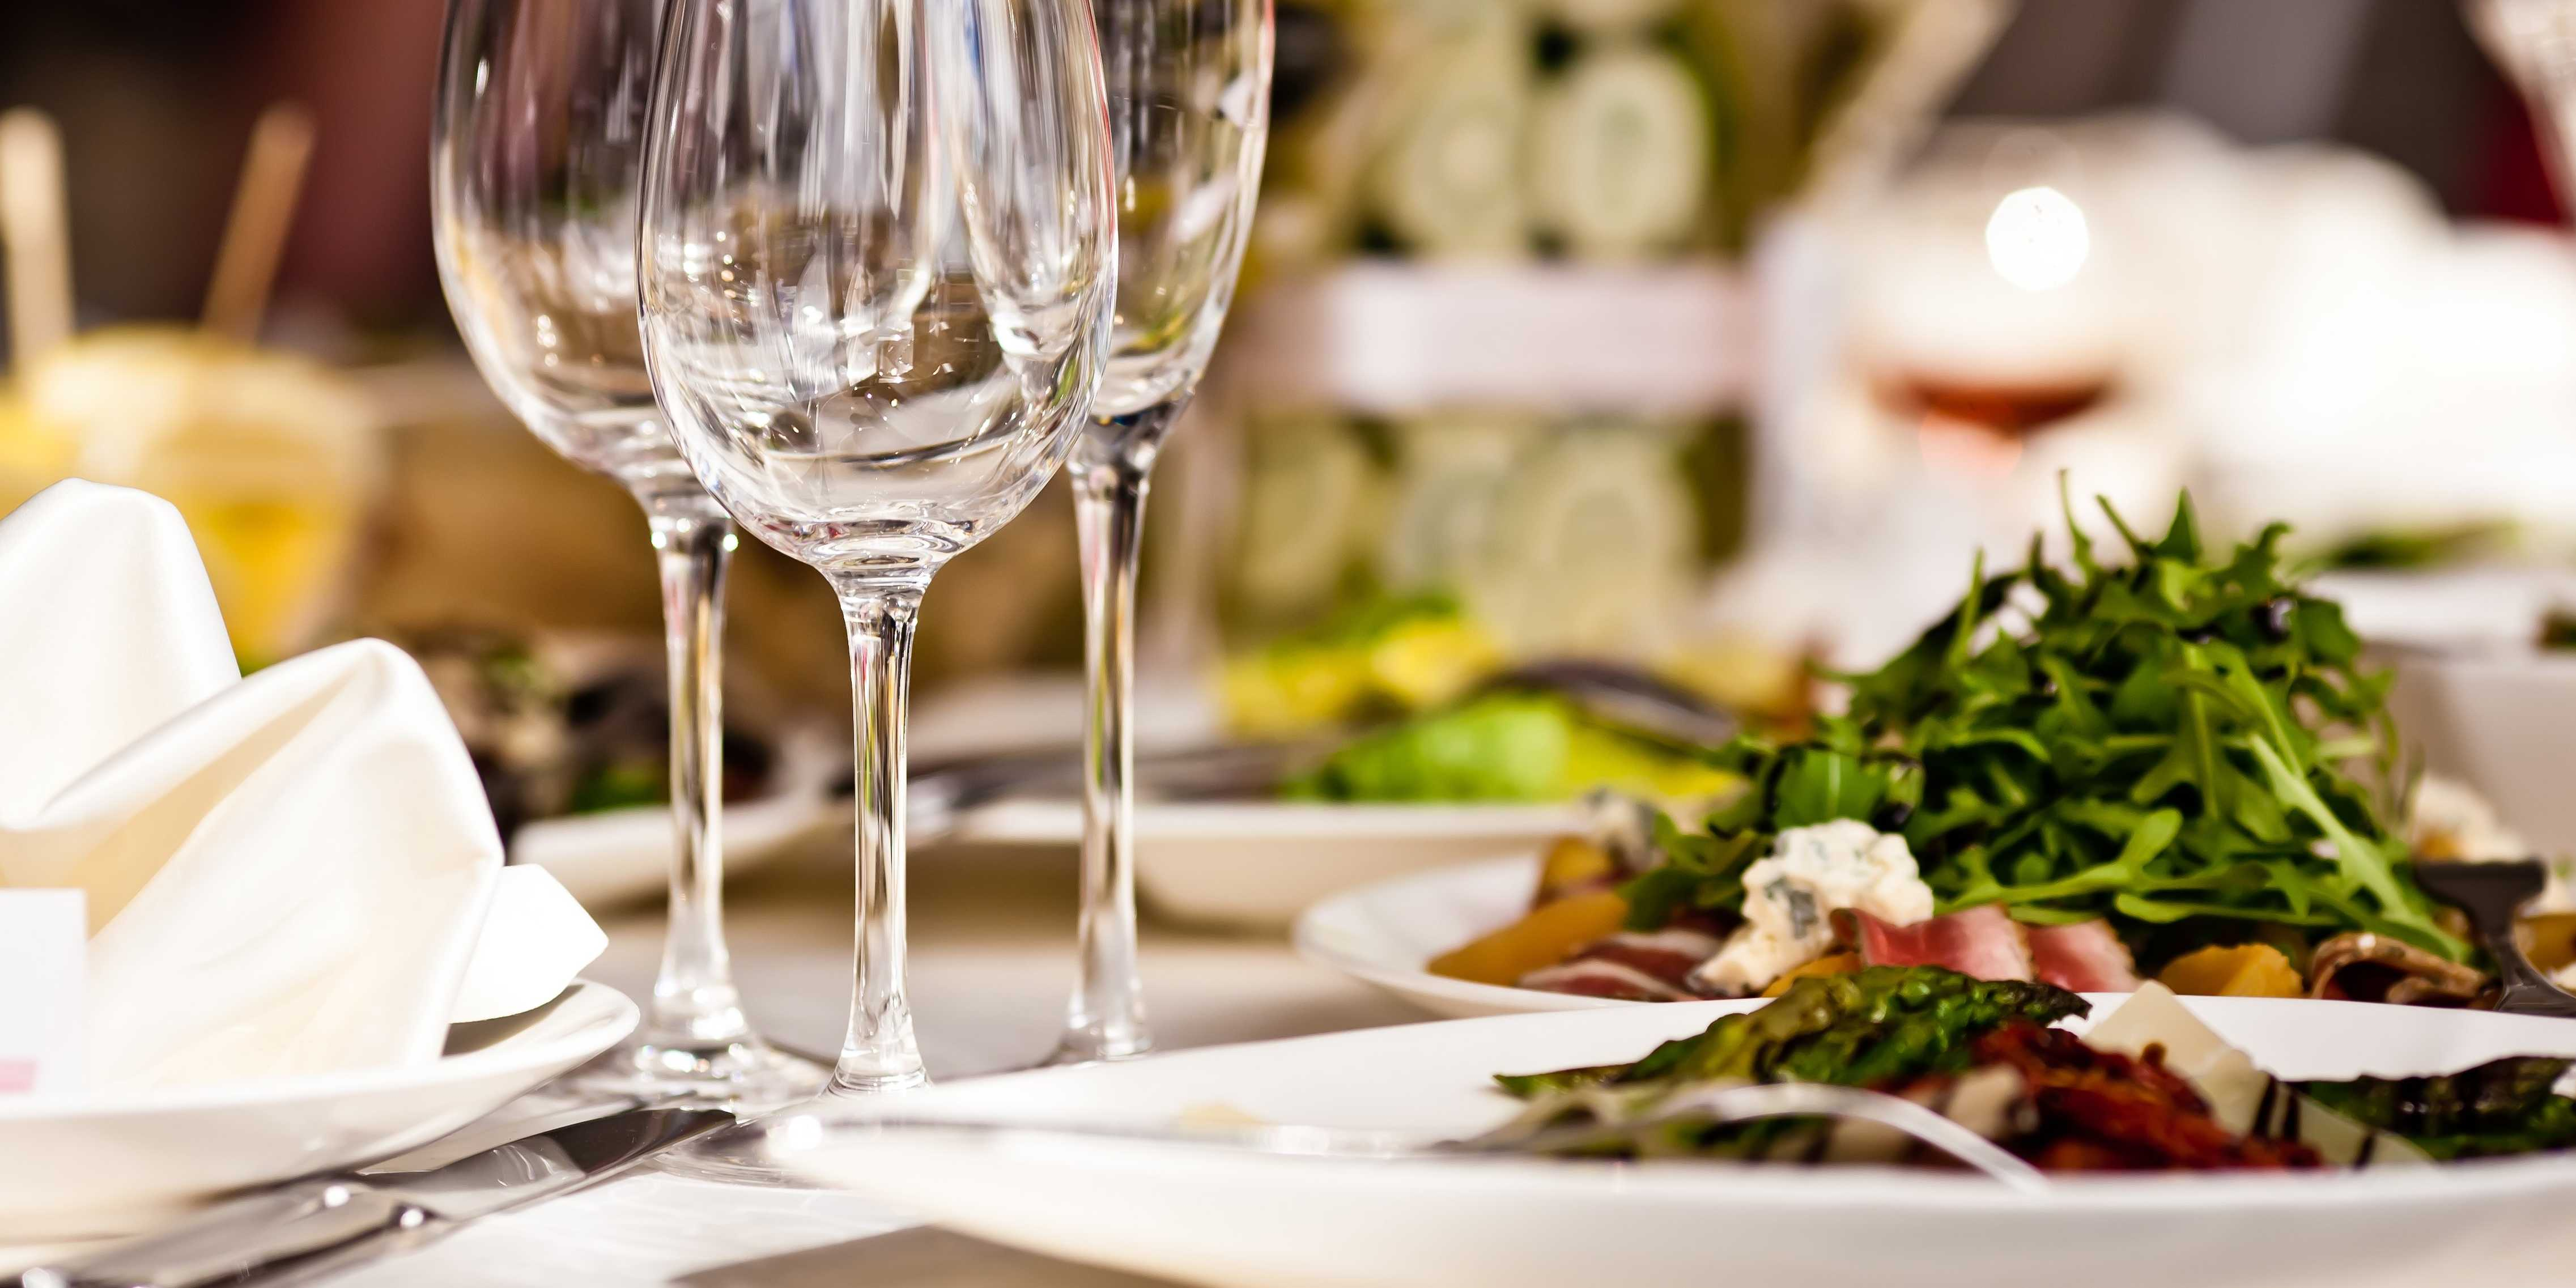 400 Sqft Fully Furnished Restaurant for Sale in MP Nagar - Bhopal